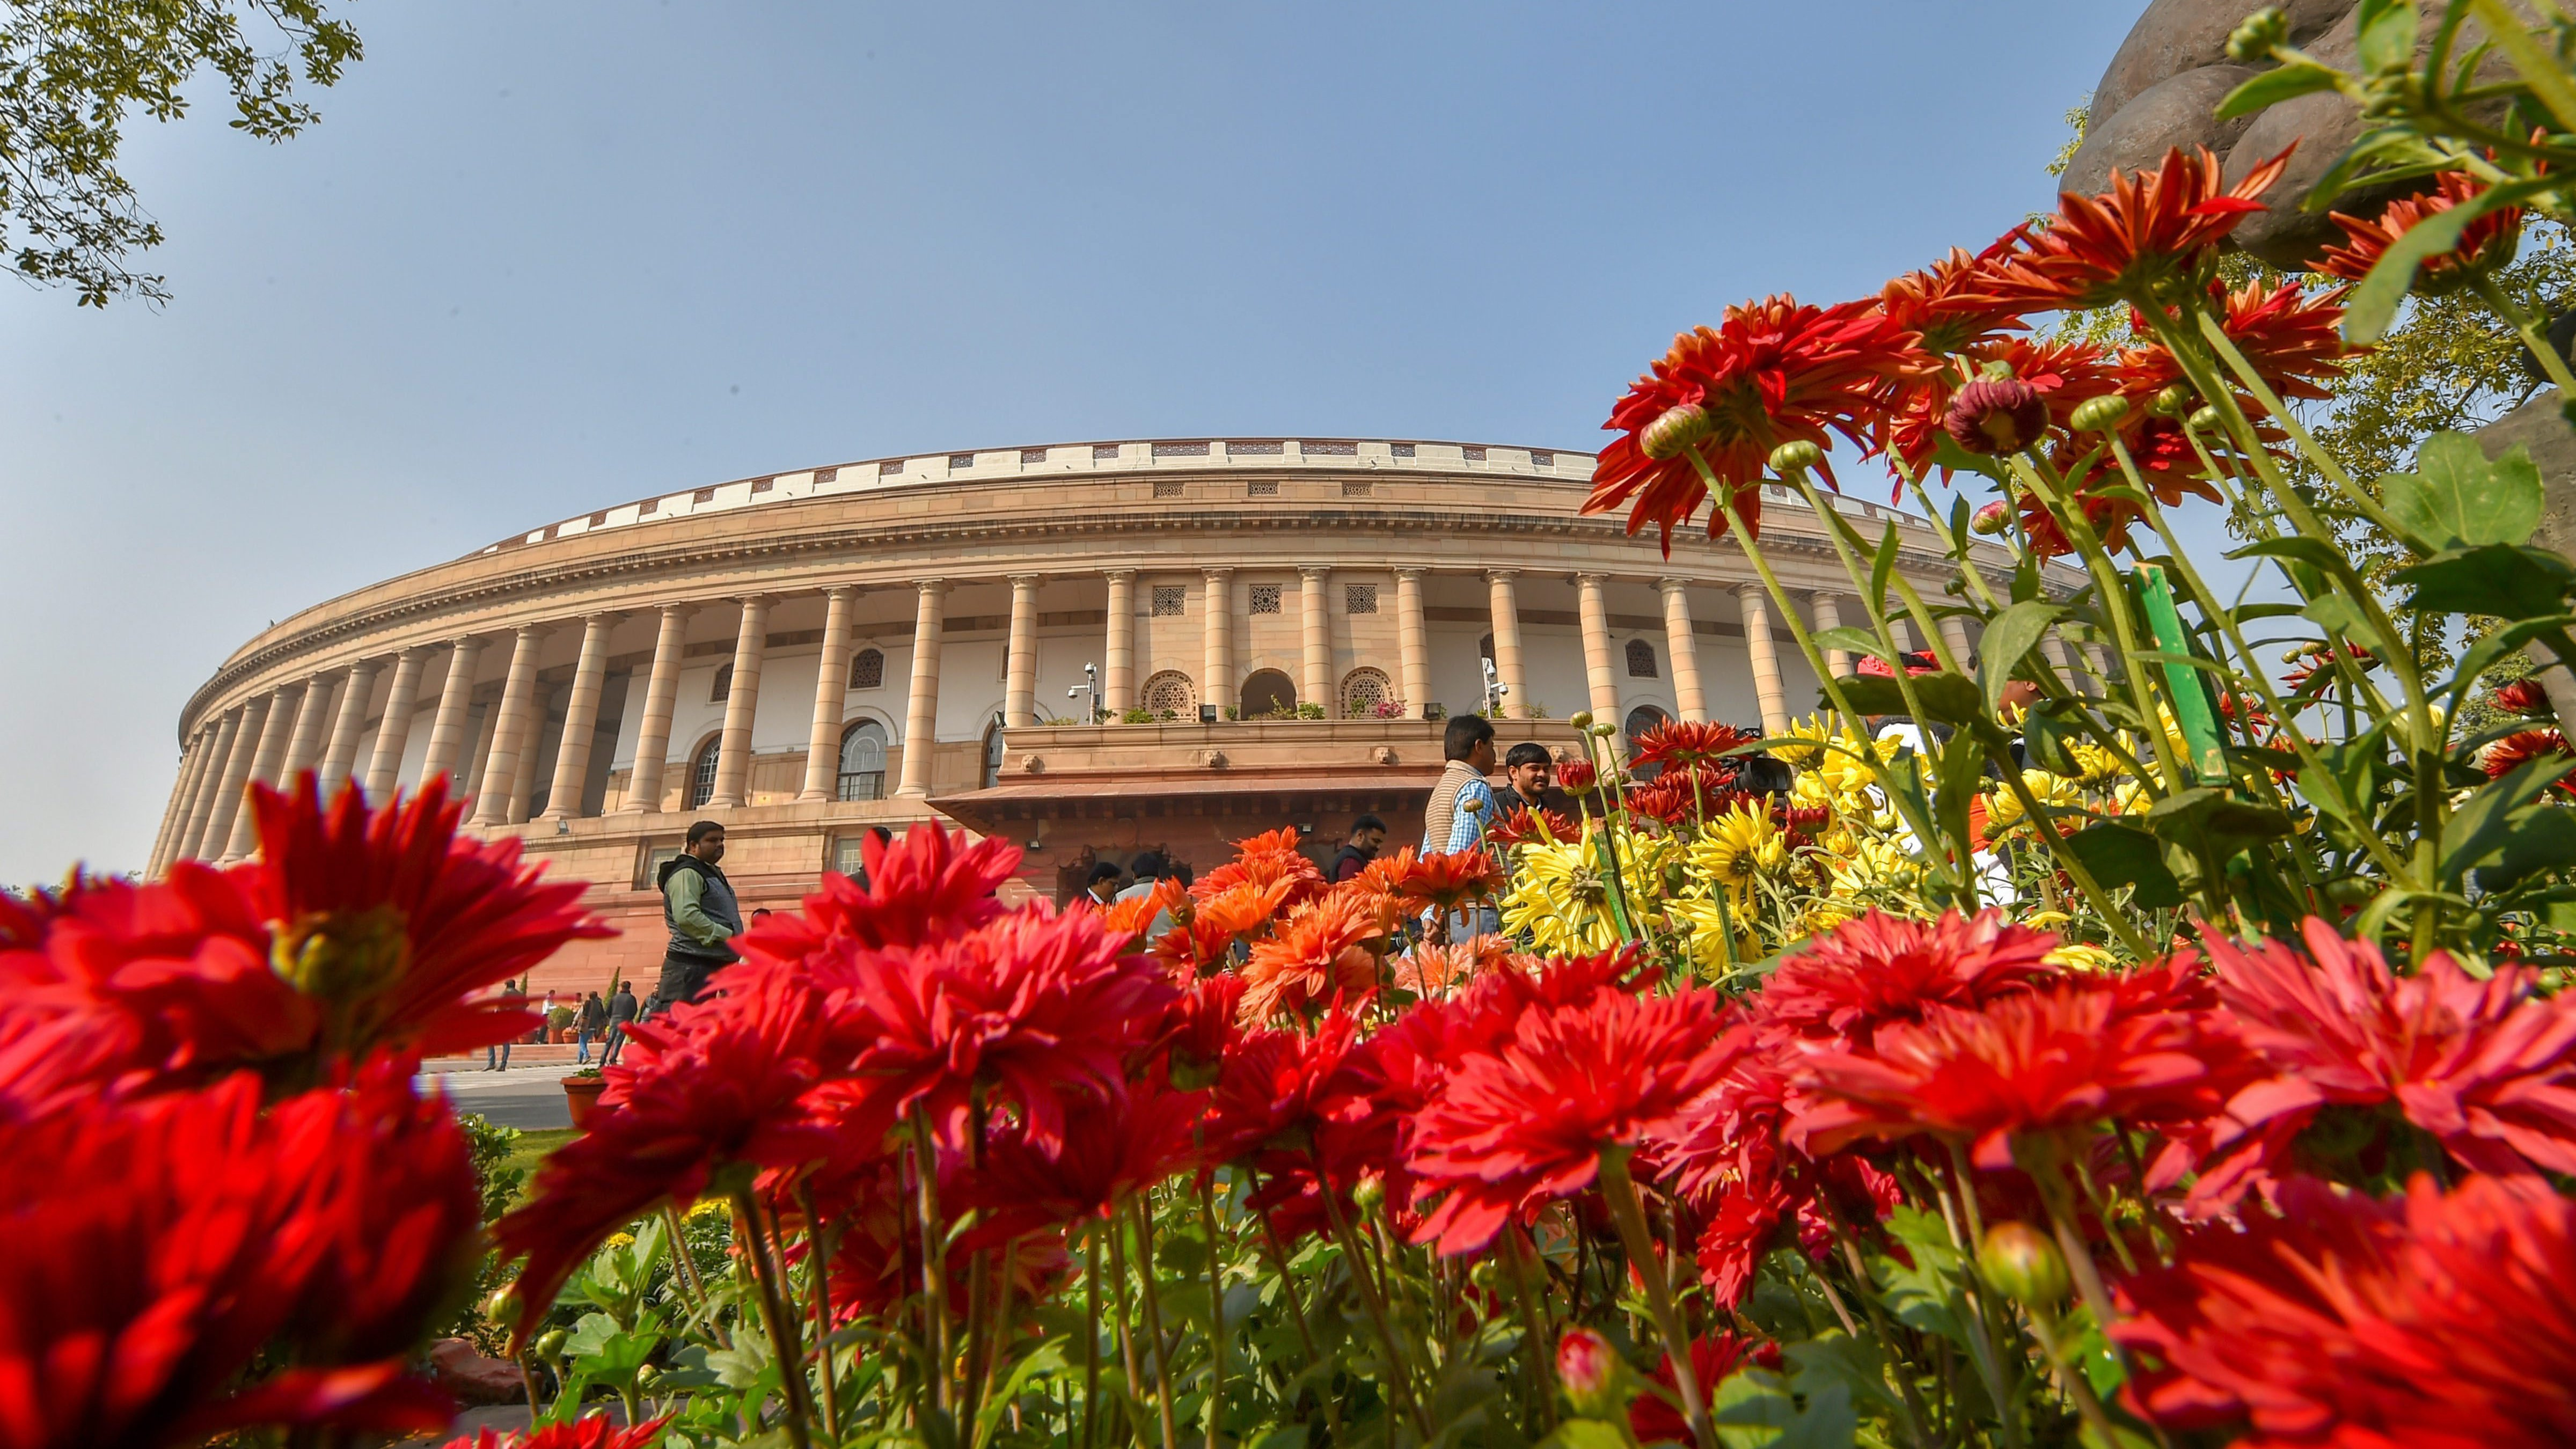 The government is trying to get the New Delhi International Arbitration Centre Bill, 2018 passed in the winter session of Parliament